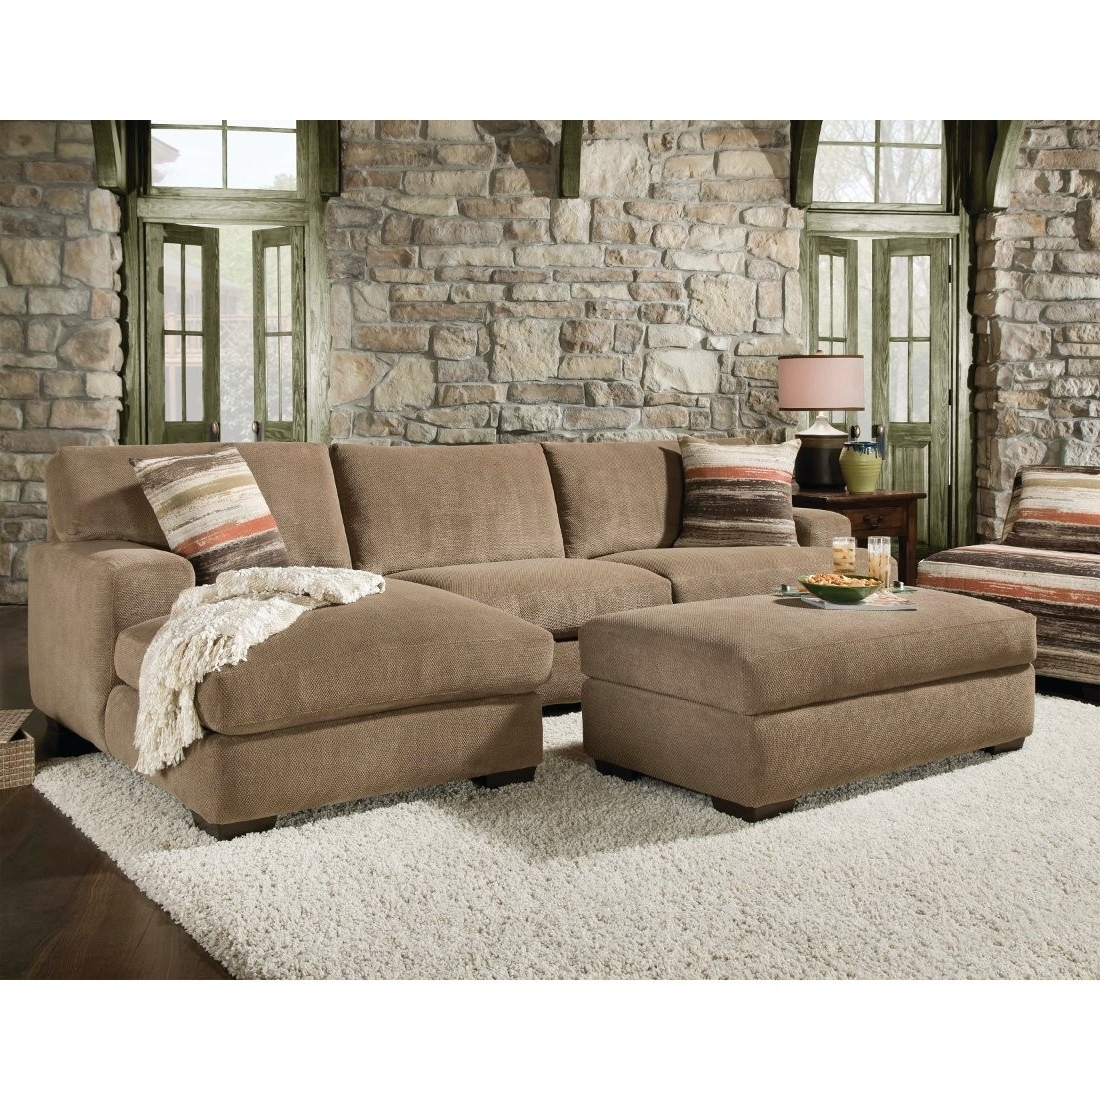 Best And Newest Small Sectional Sofas With Chaise Within Leather Sectional Sleeper Sofa Sectional Sofas With Recliners And (View 4 of 15)